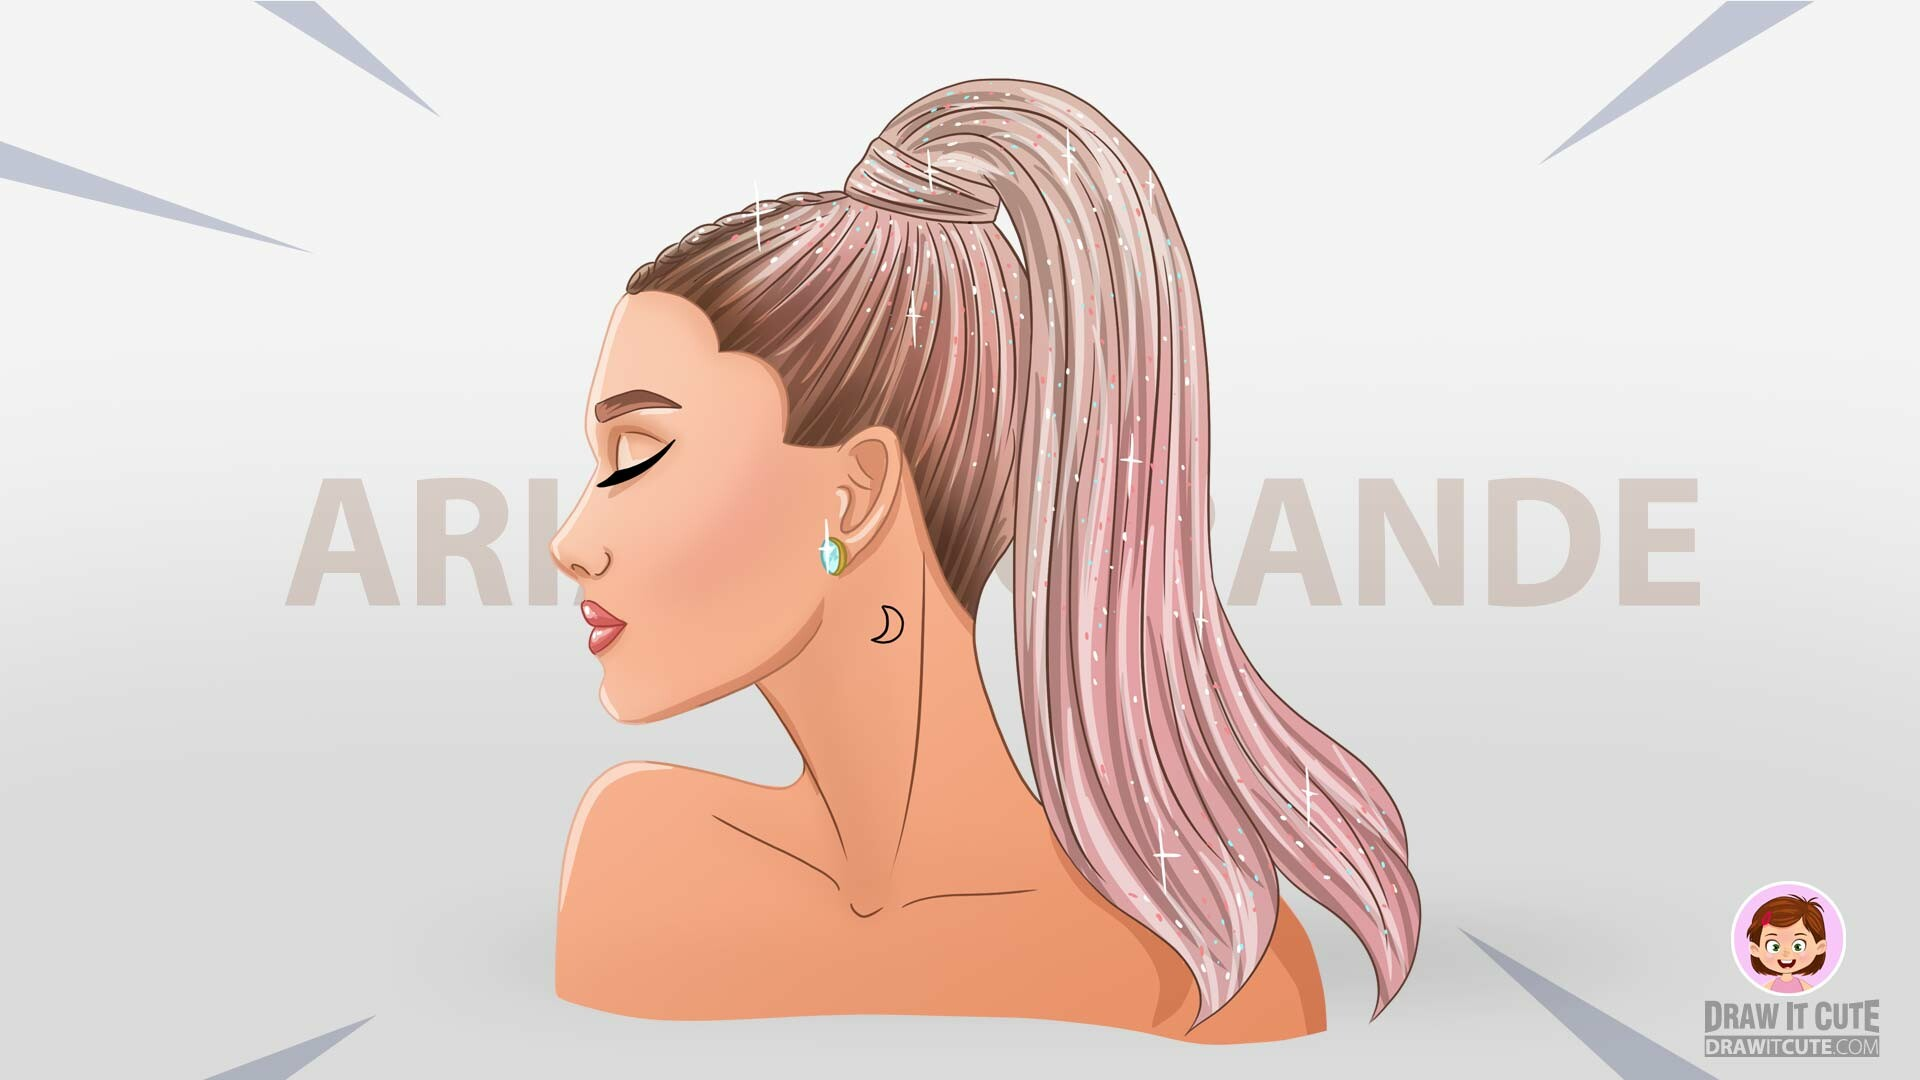 Artstation How To Draw Ariana Grande Step By Step Guide Drawitcute Com